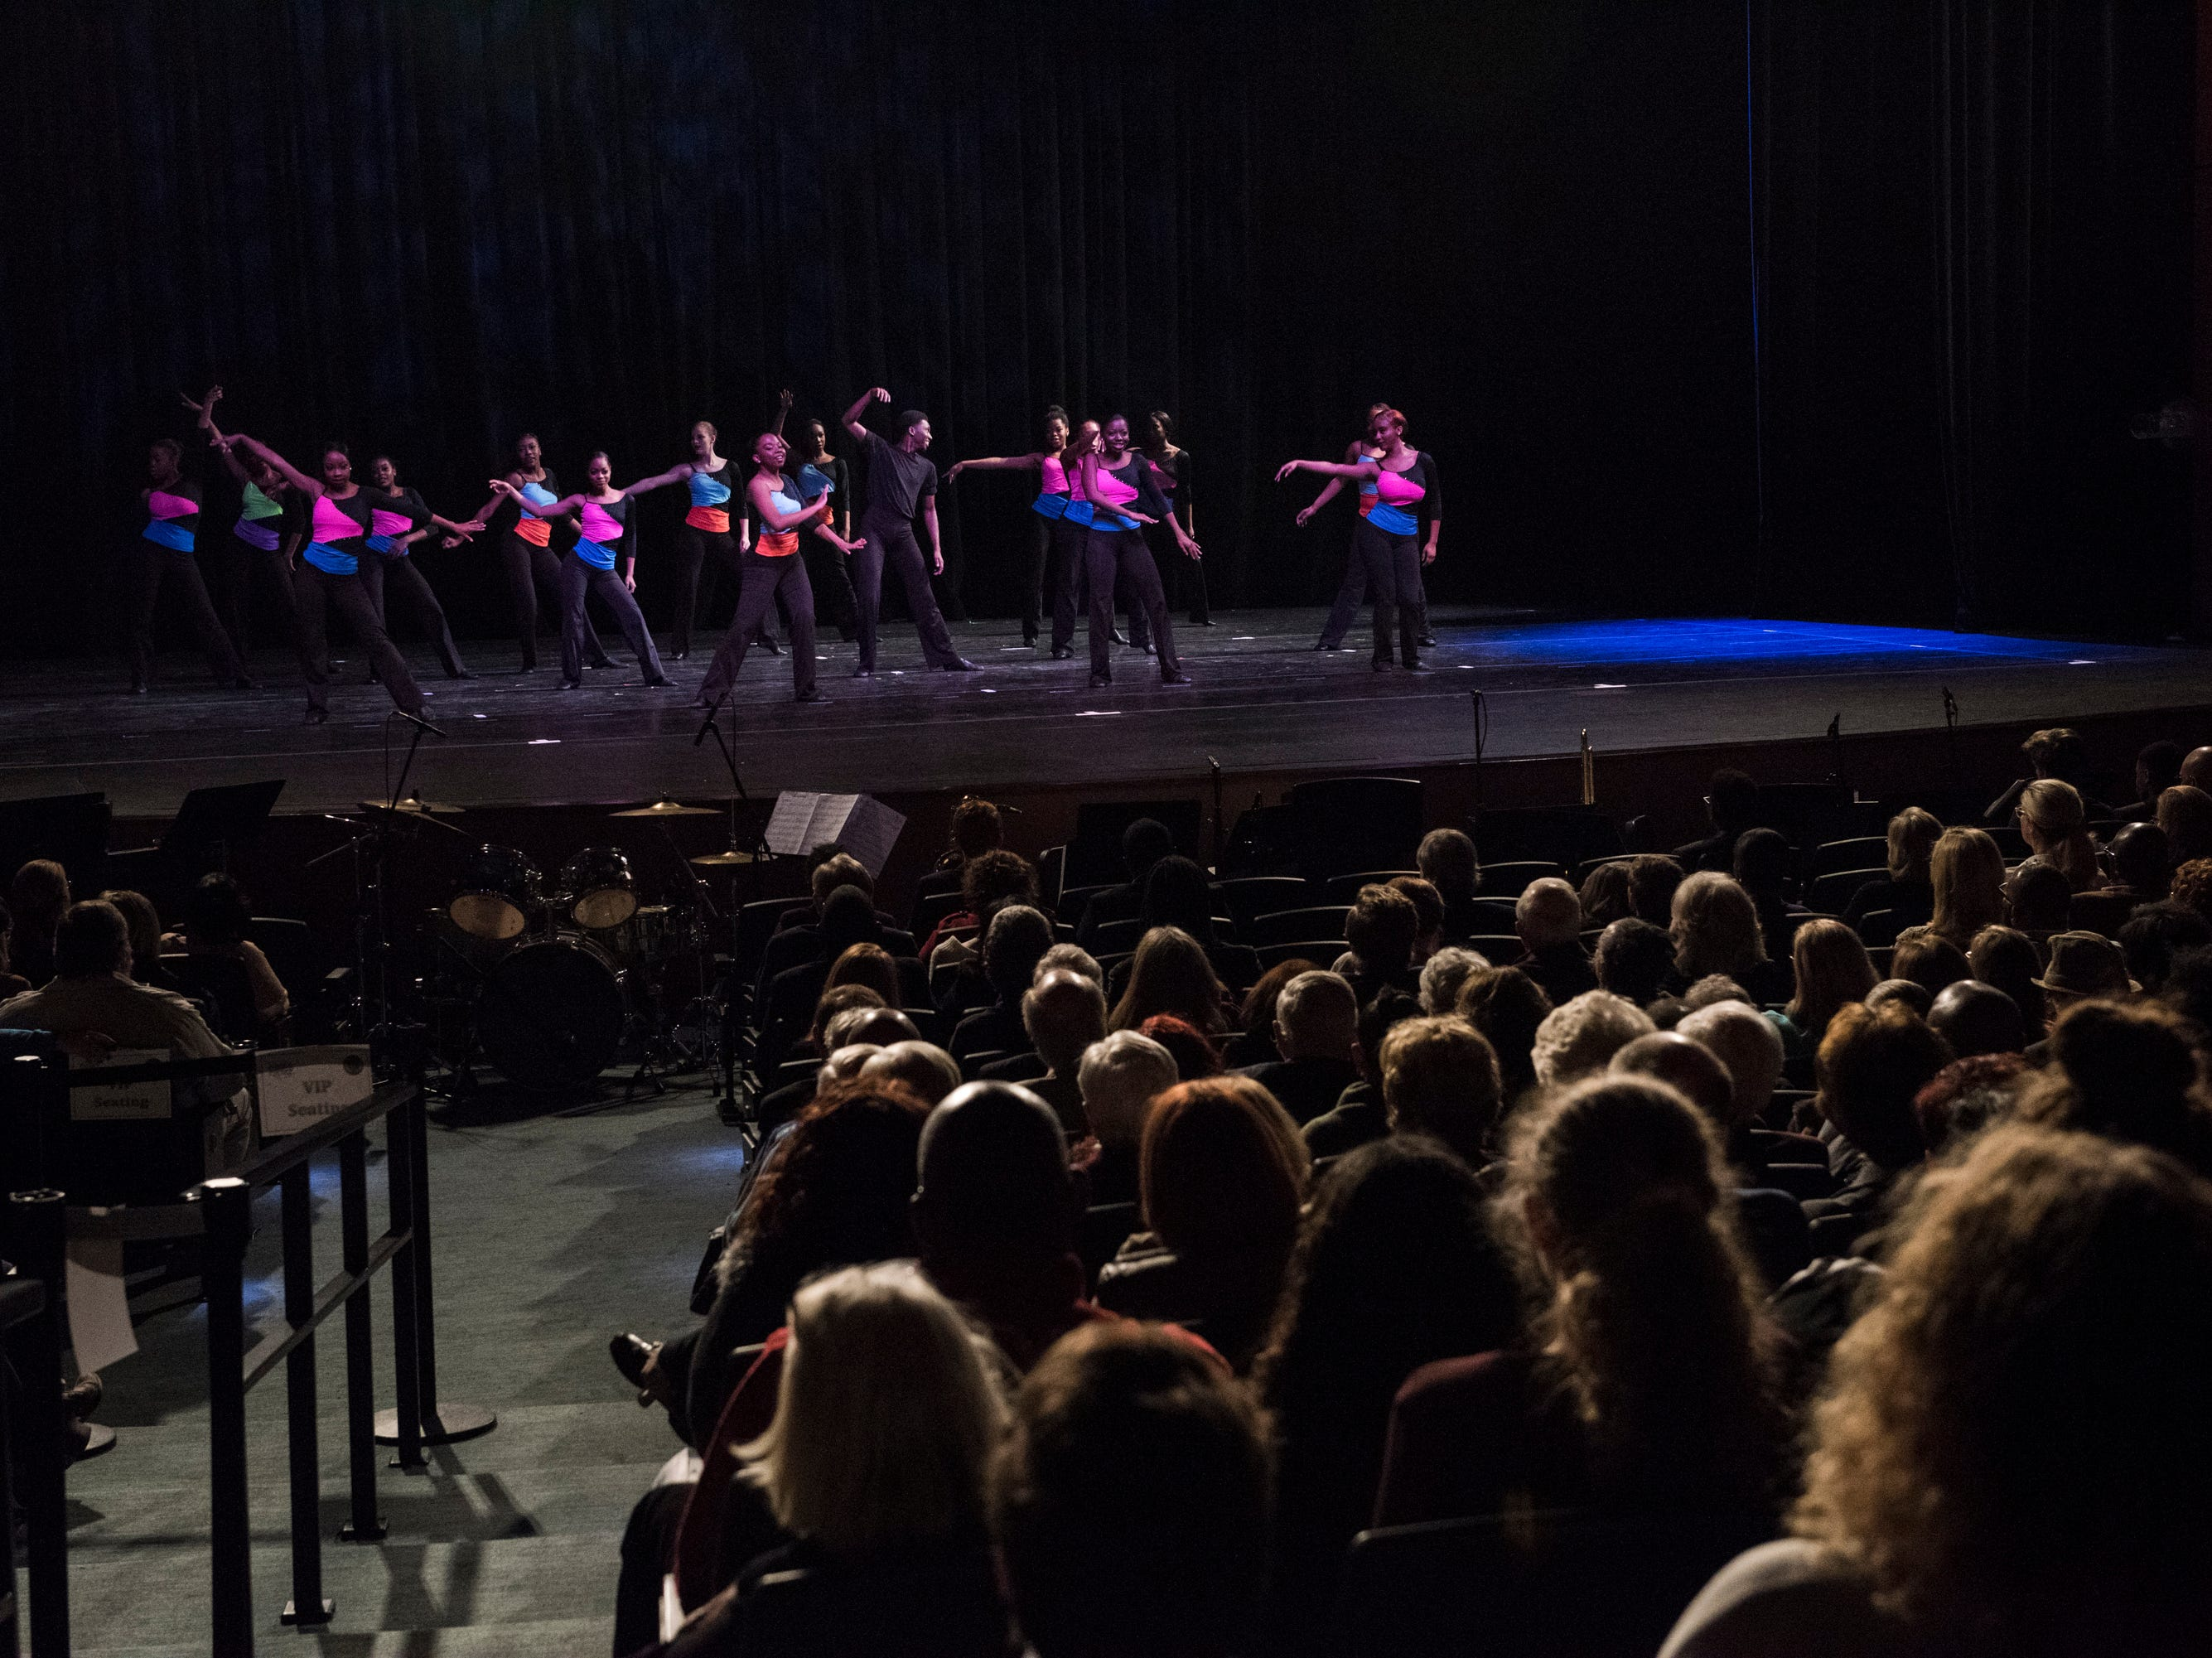 Dance students perform during the BTW Showcase: Rise at the Montgomery Performing Arts Center in Montgomery, Ala., on Friday, Jan. 11, 2019.